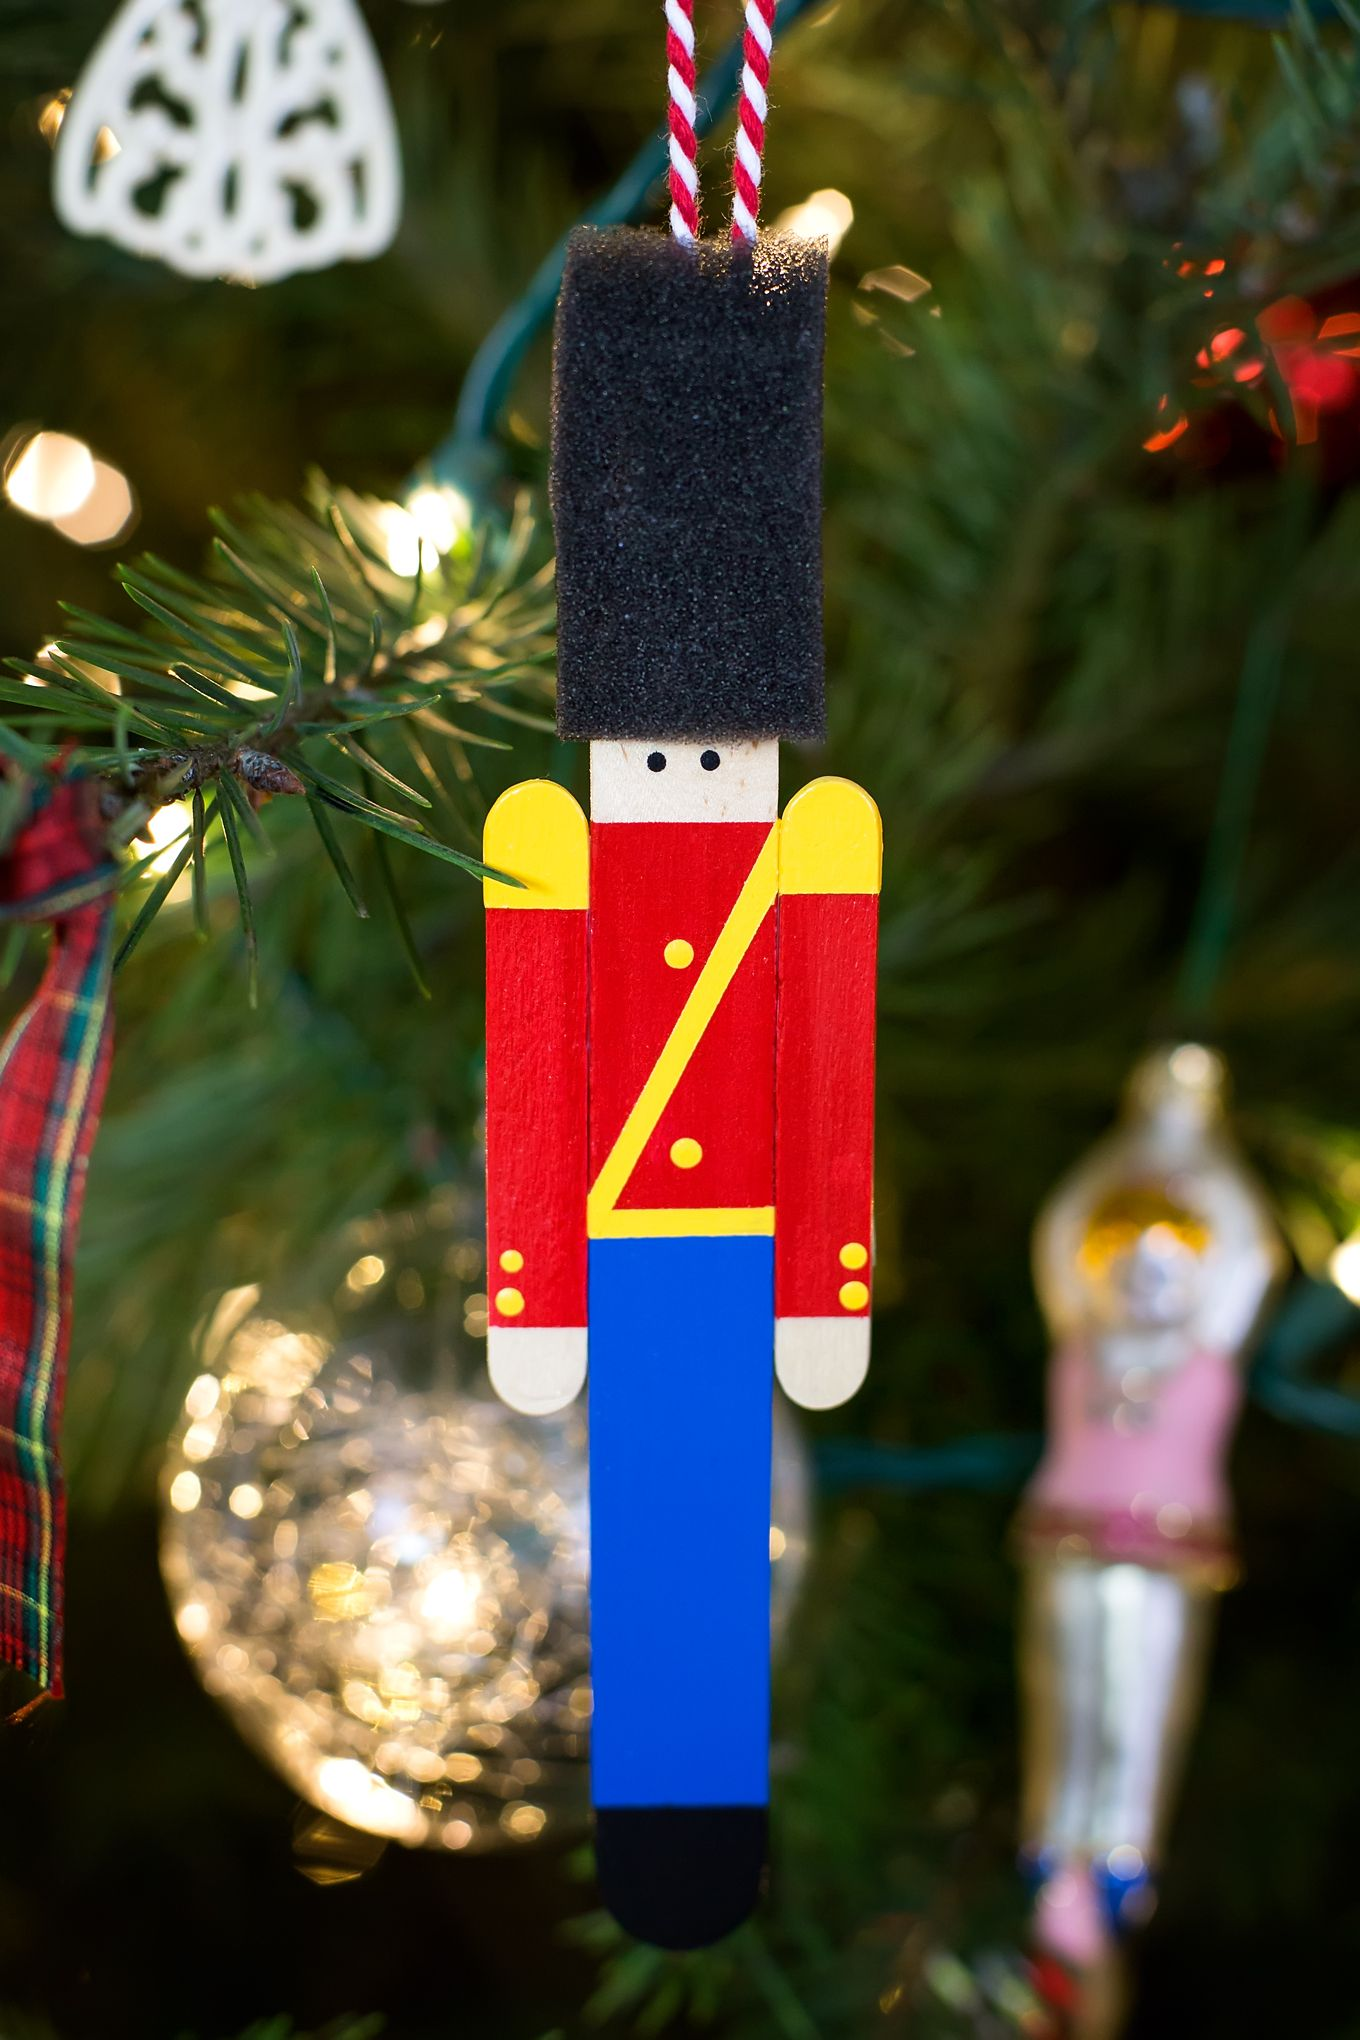 Crafters Big And Small Will Delight In Making A Wooden Toy Soldier Ornament With Craft Sticks Pai Craft Stick Crafts Christmas Crafts Popsicle Stick Ornaments